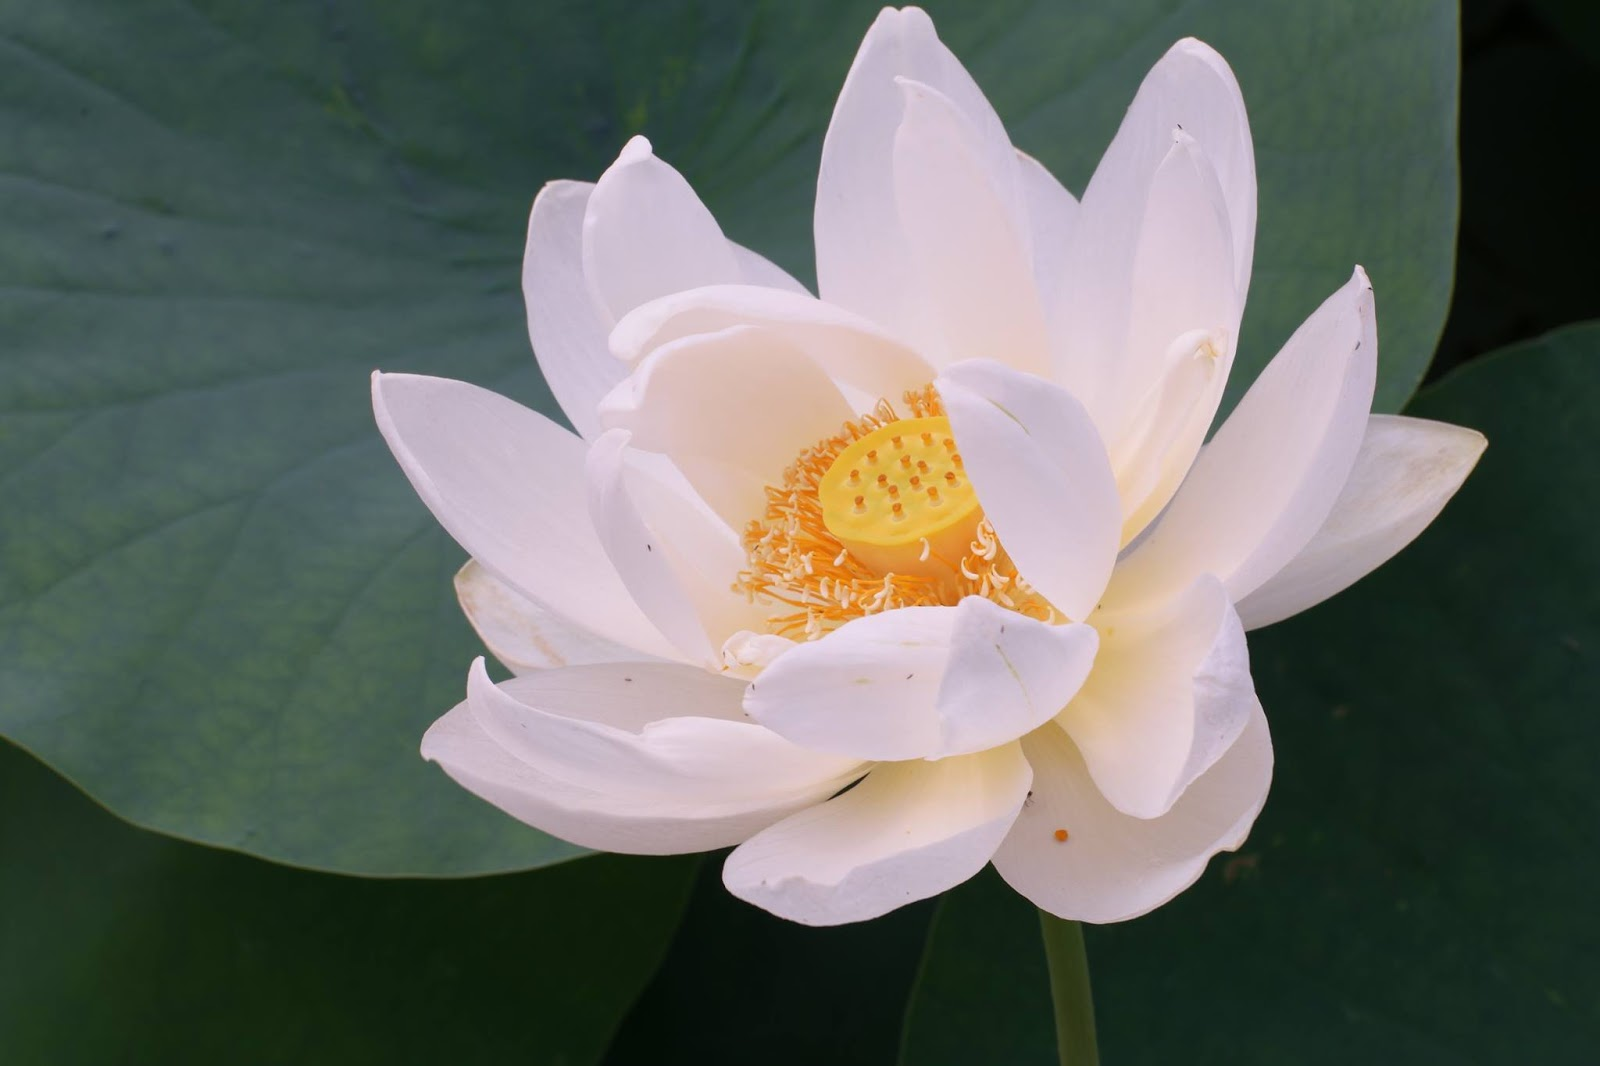 A lotus flower is in bloom on a pond izmirmasajfo